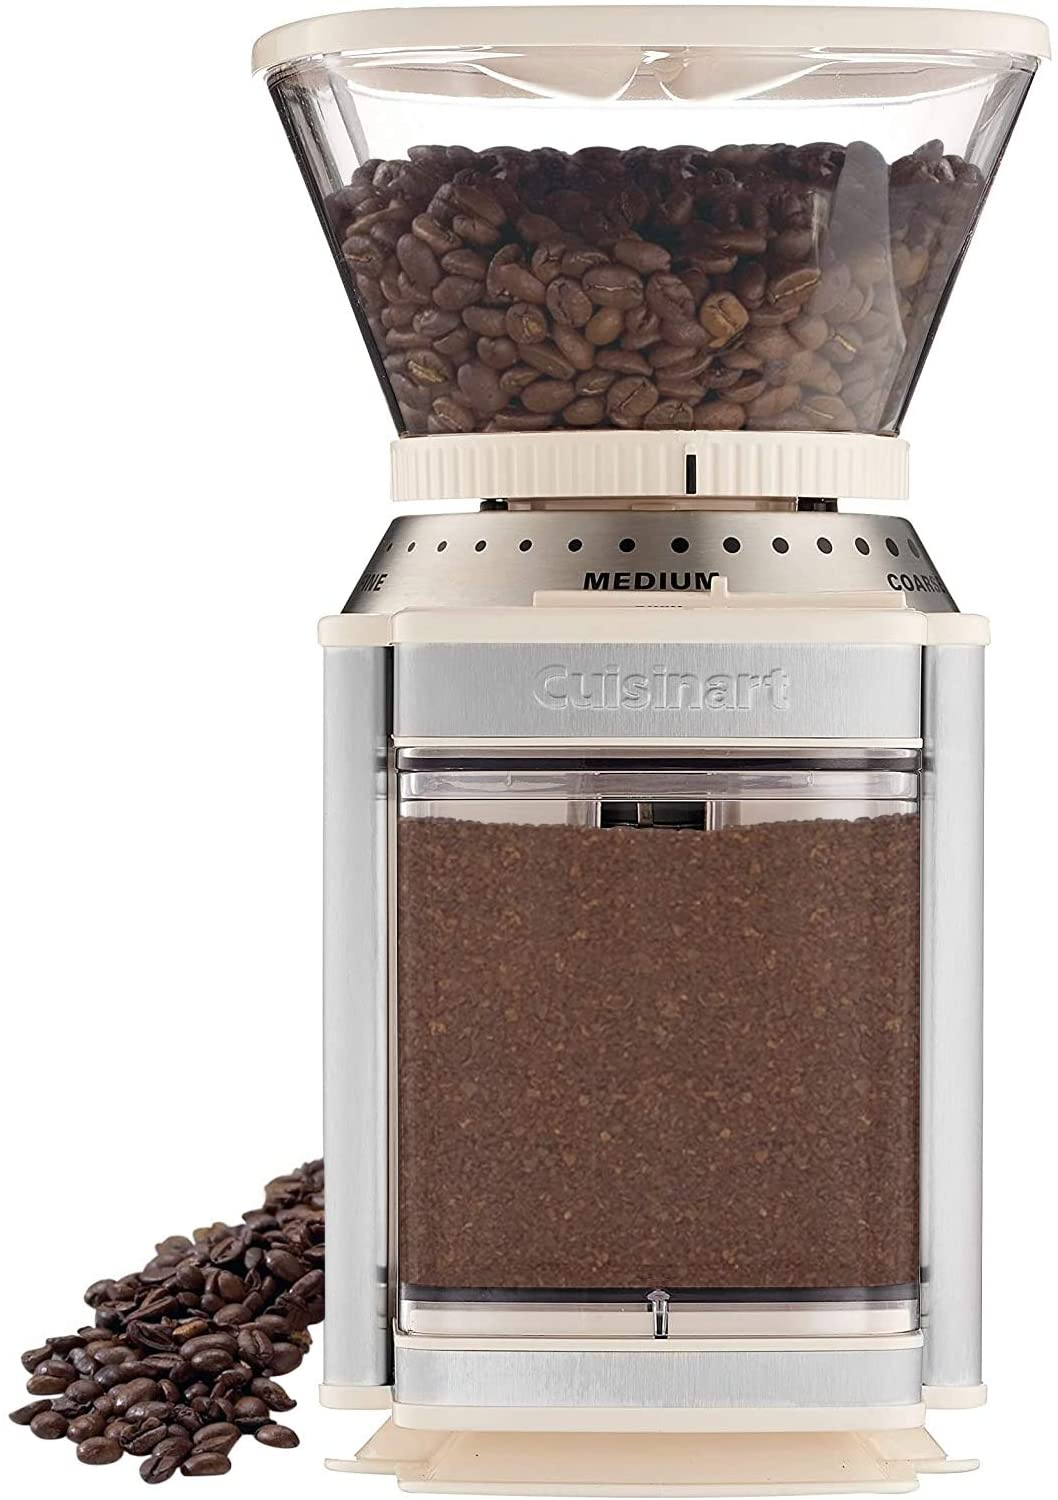 Top 7 Most desired Best coffee grinder for Chemex- Experts choice 4